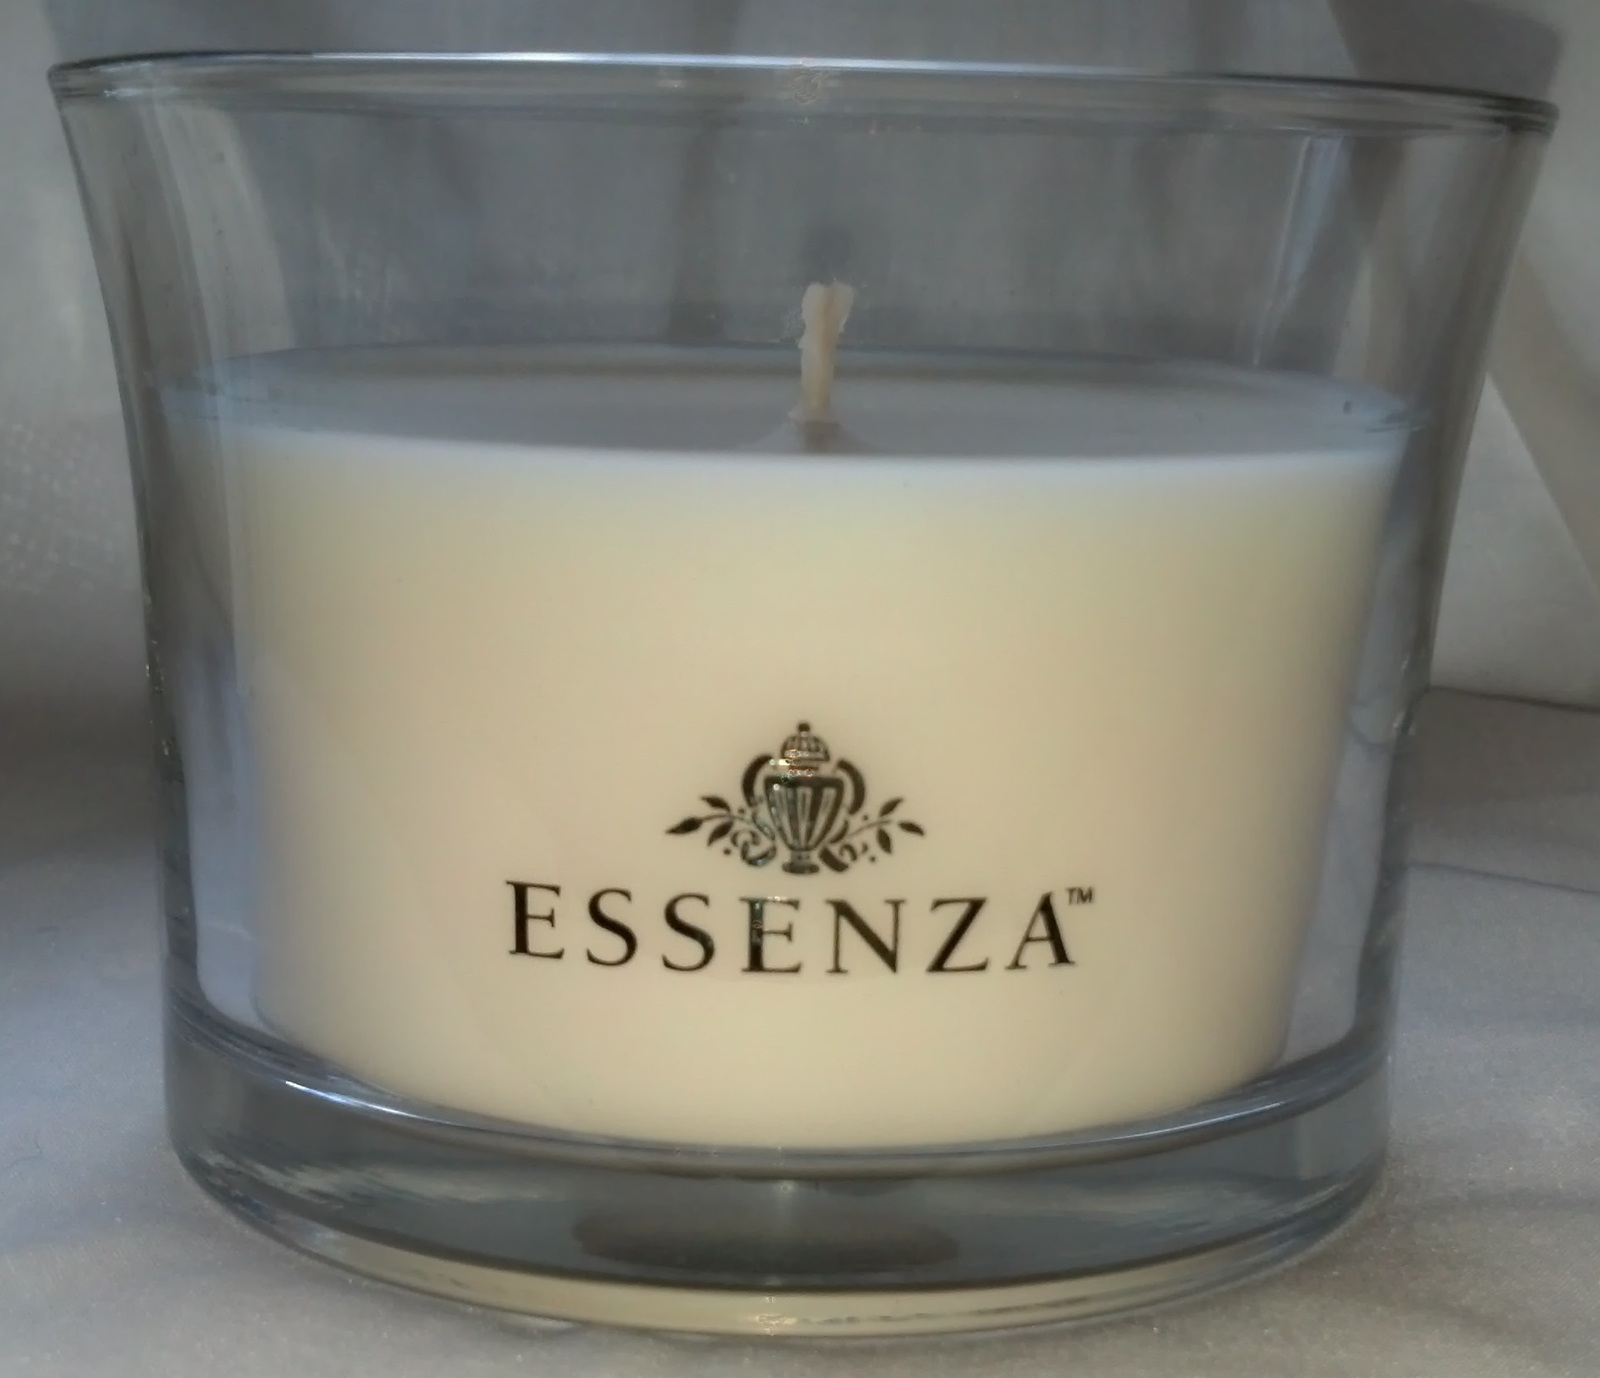 essenza candles 10 oz large decorative glass and 50 similar items. Black Bedroom Furniture Sets. Home Design Ideas